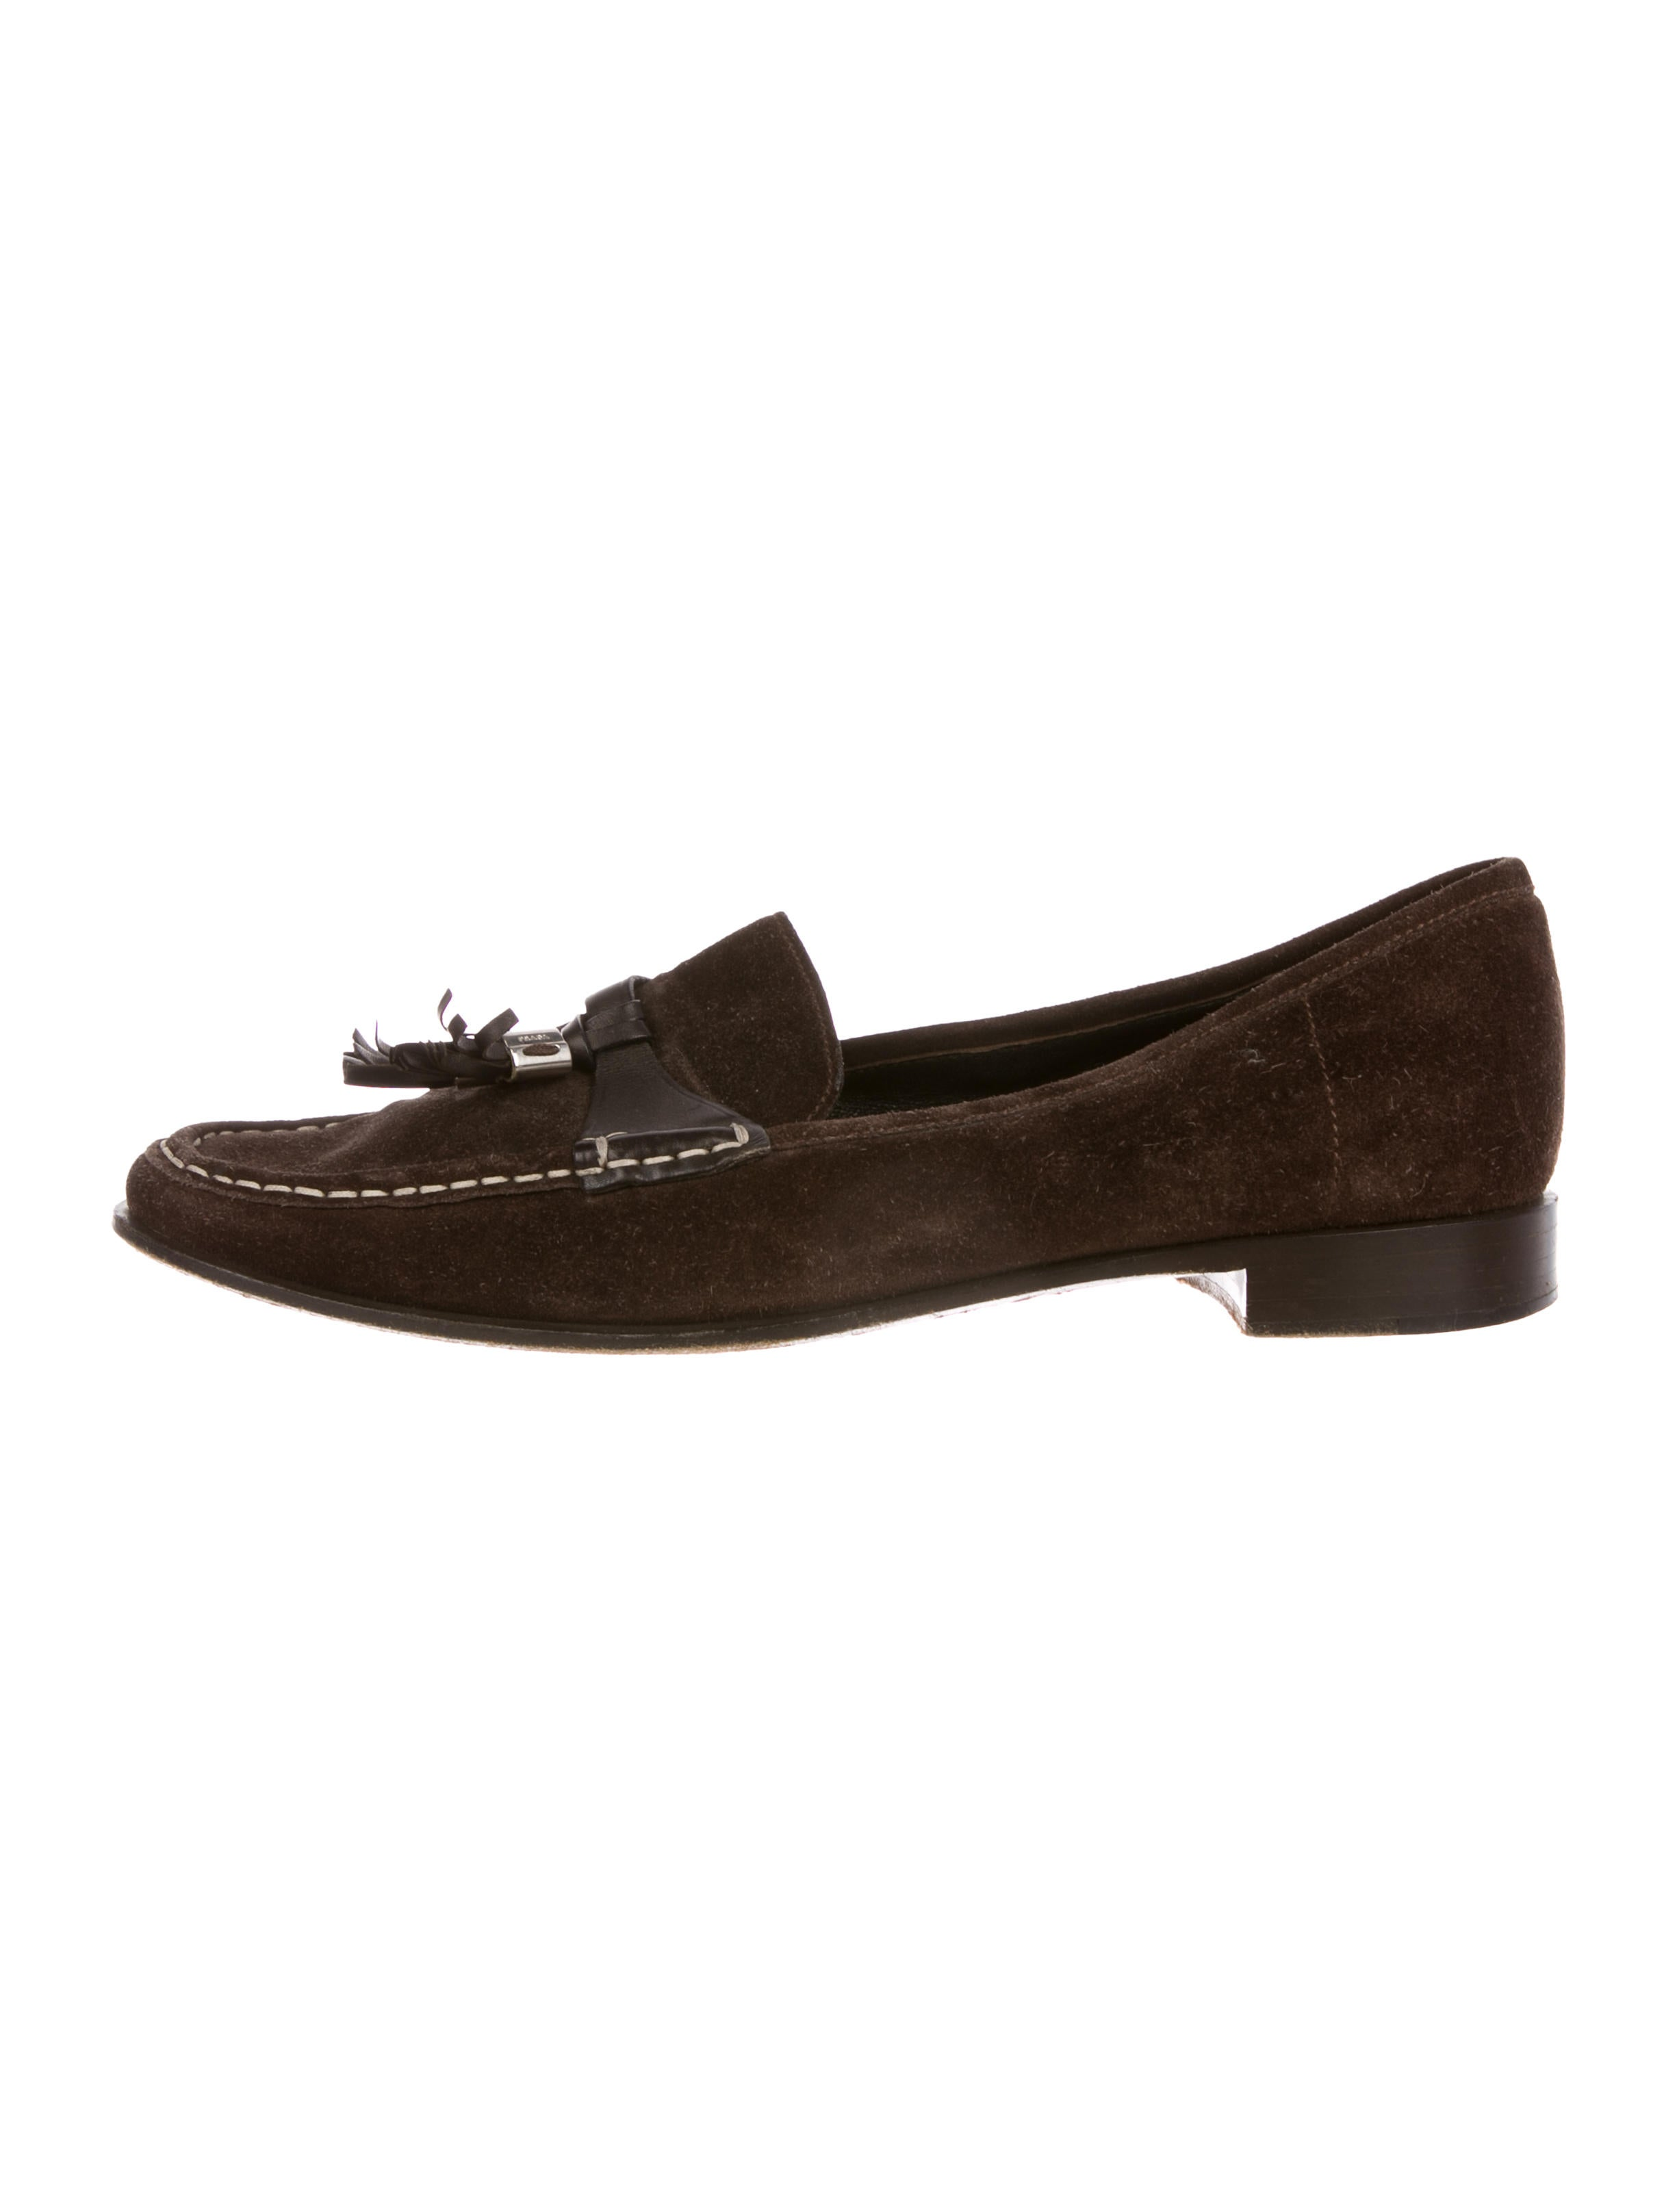 Prada Suede Round-Toe Loafers cheap big sale free shipping shop for cheap shop for clearance buy BOiXWY0